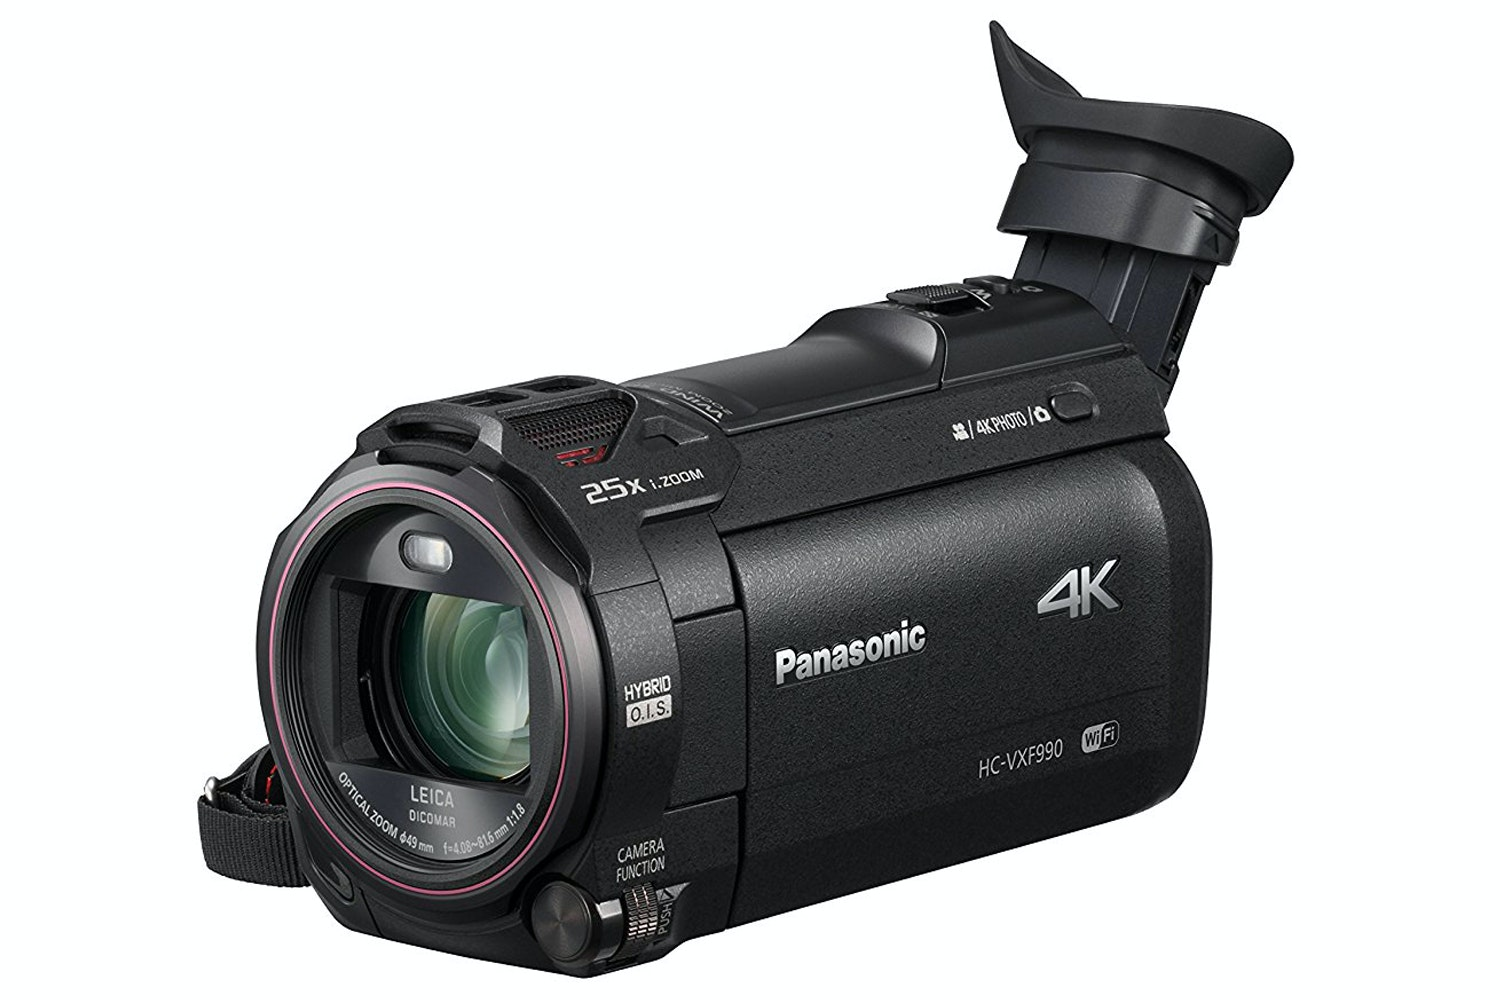 Panasonic HC-VXF990 4K Full HD Camcorder